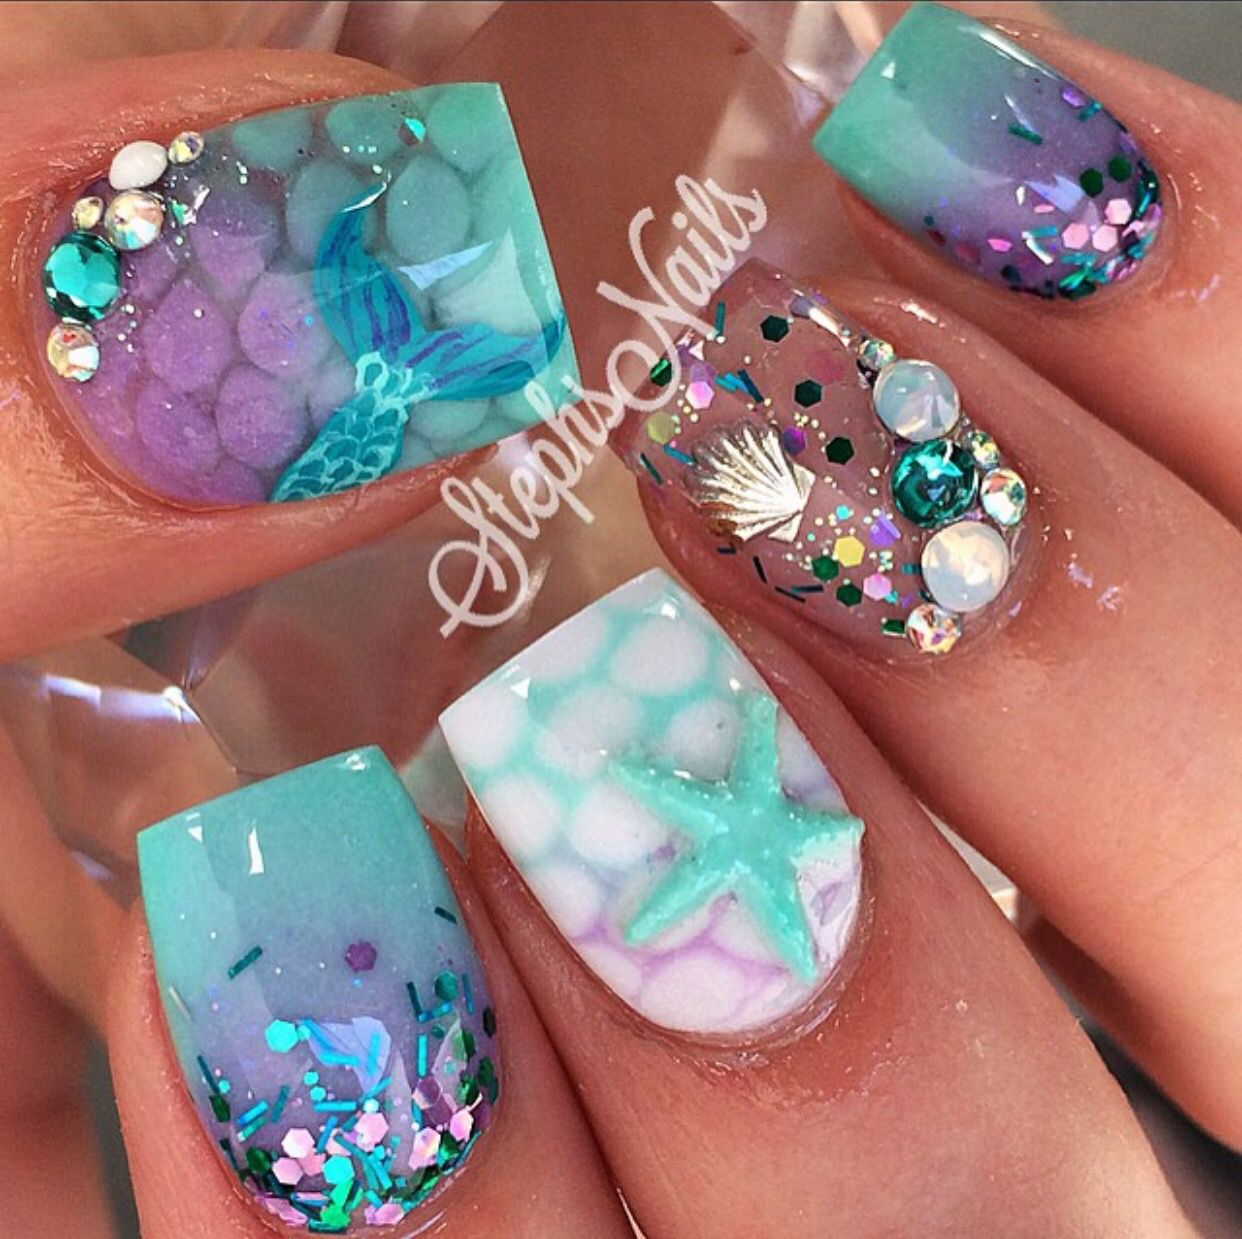 Pin de Savannah Matusky en Nails. | Pinterest | Turquesa, La playa y ...